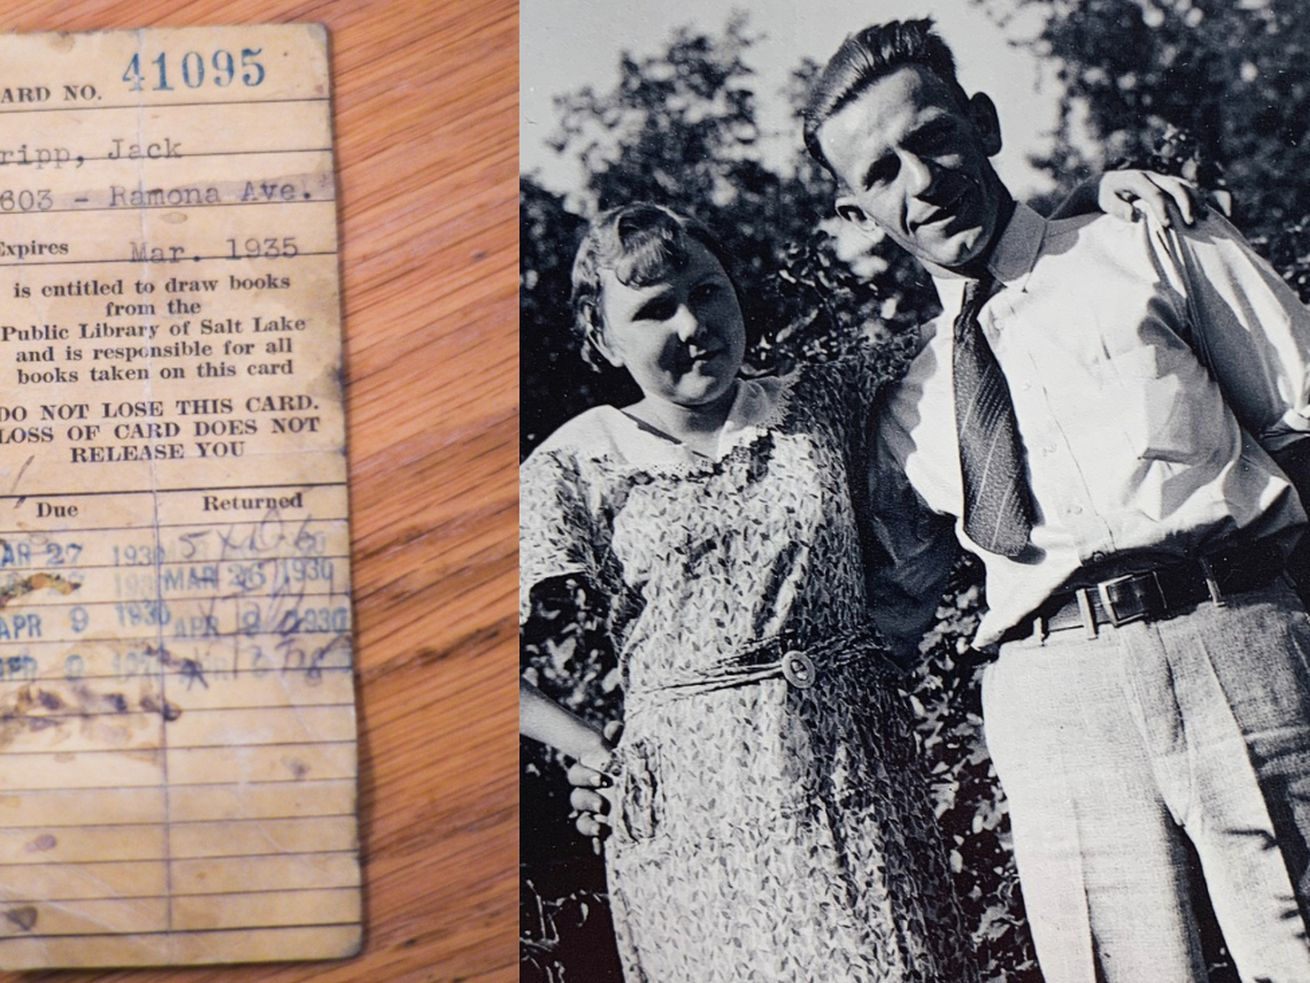 The Salt Lake Library found a missing card from 1930. We found the owner